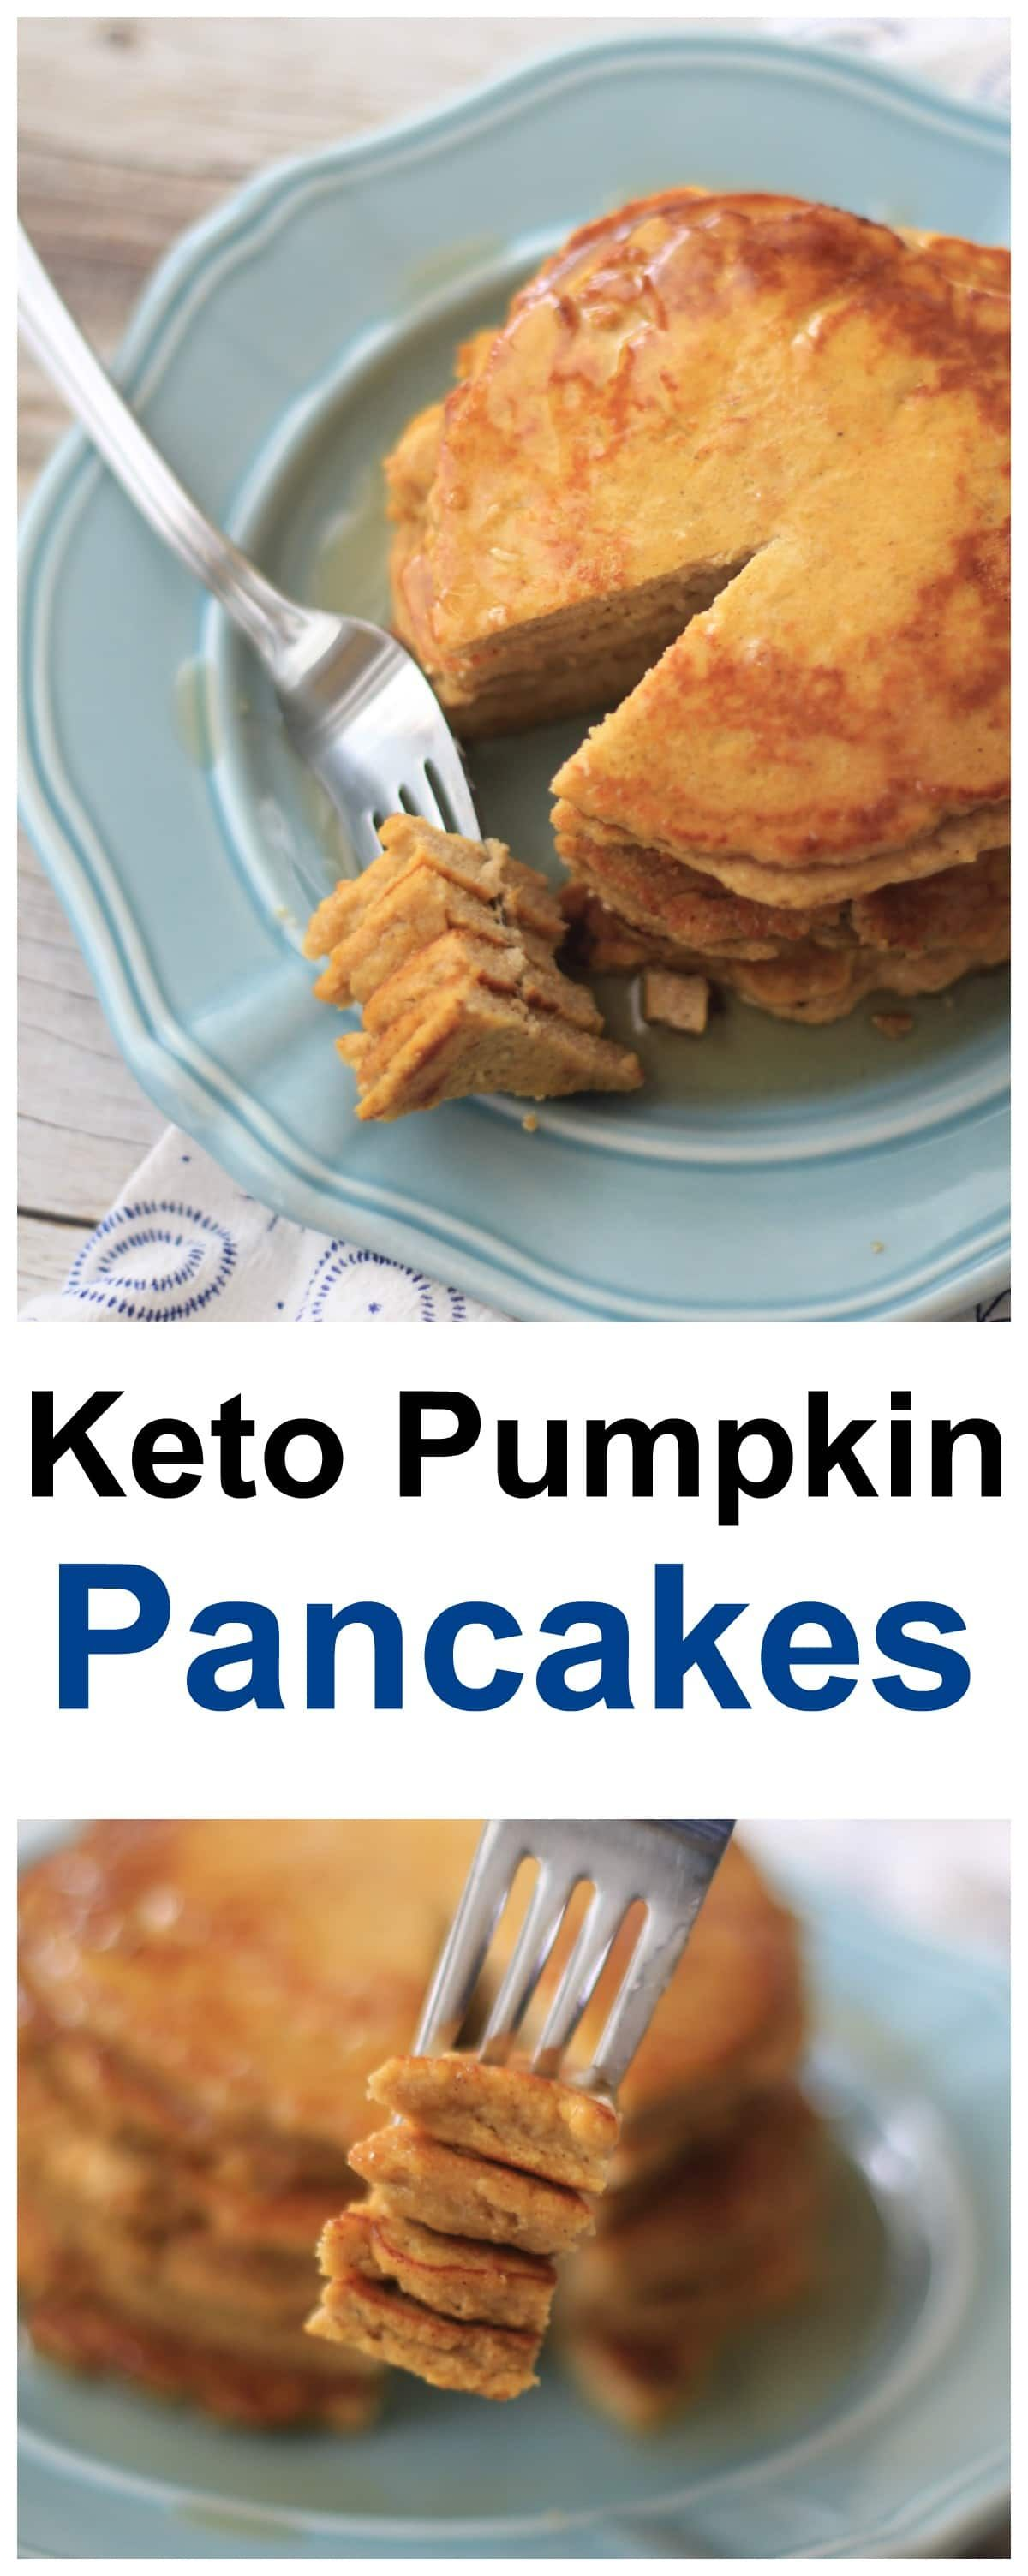 Keto Pumpkin Pancakes / Fluffy & Delicious